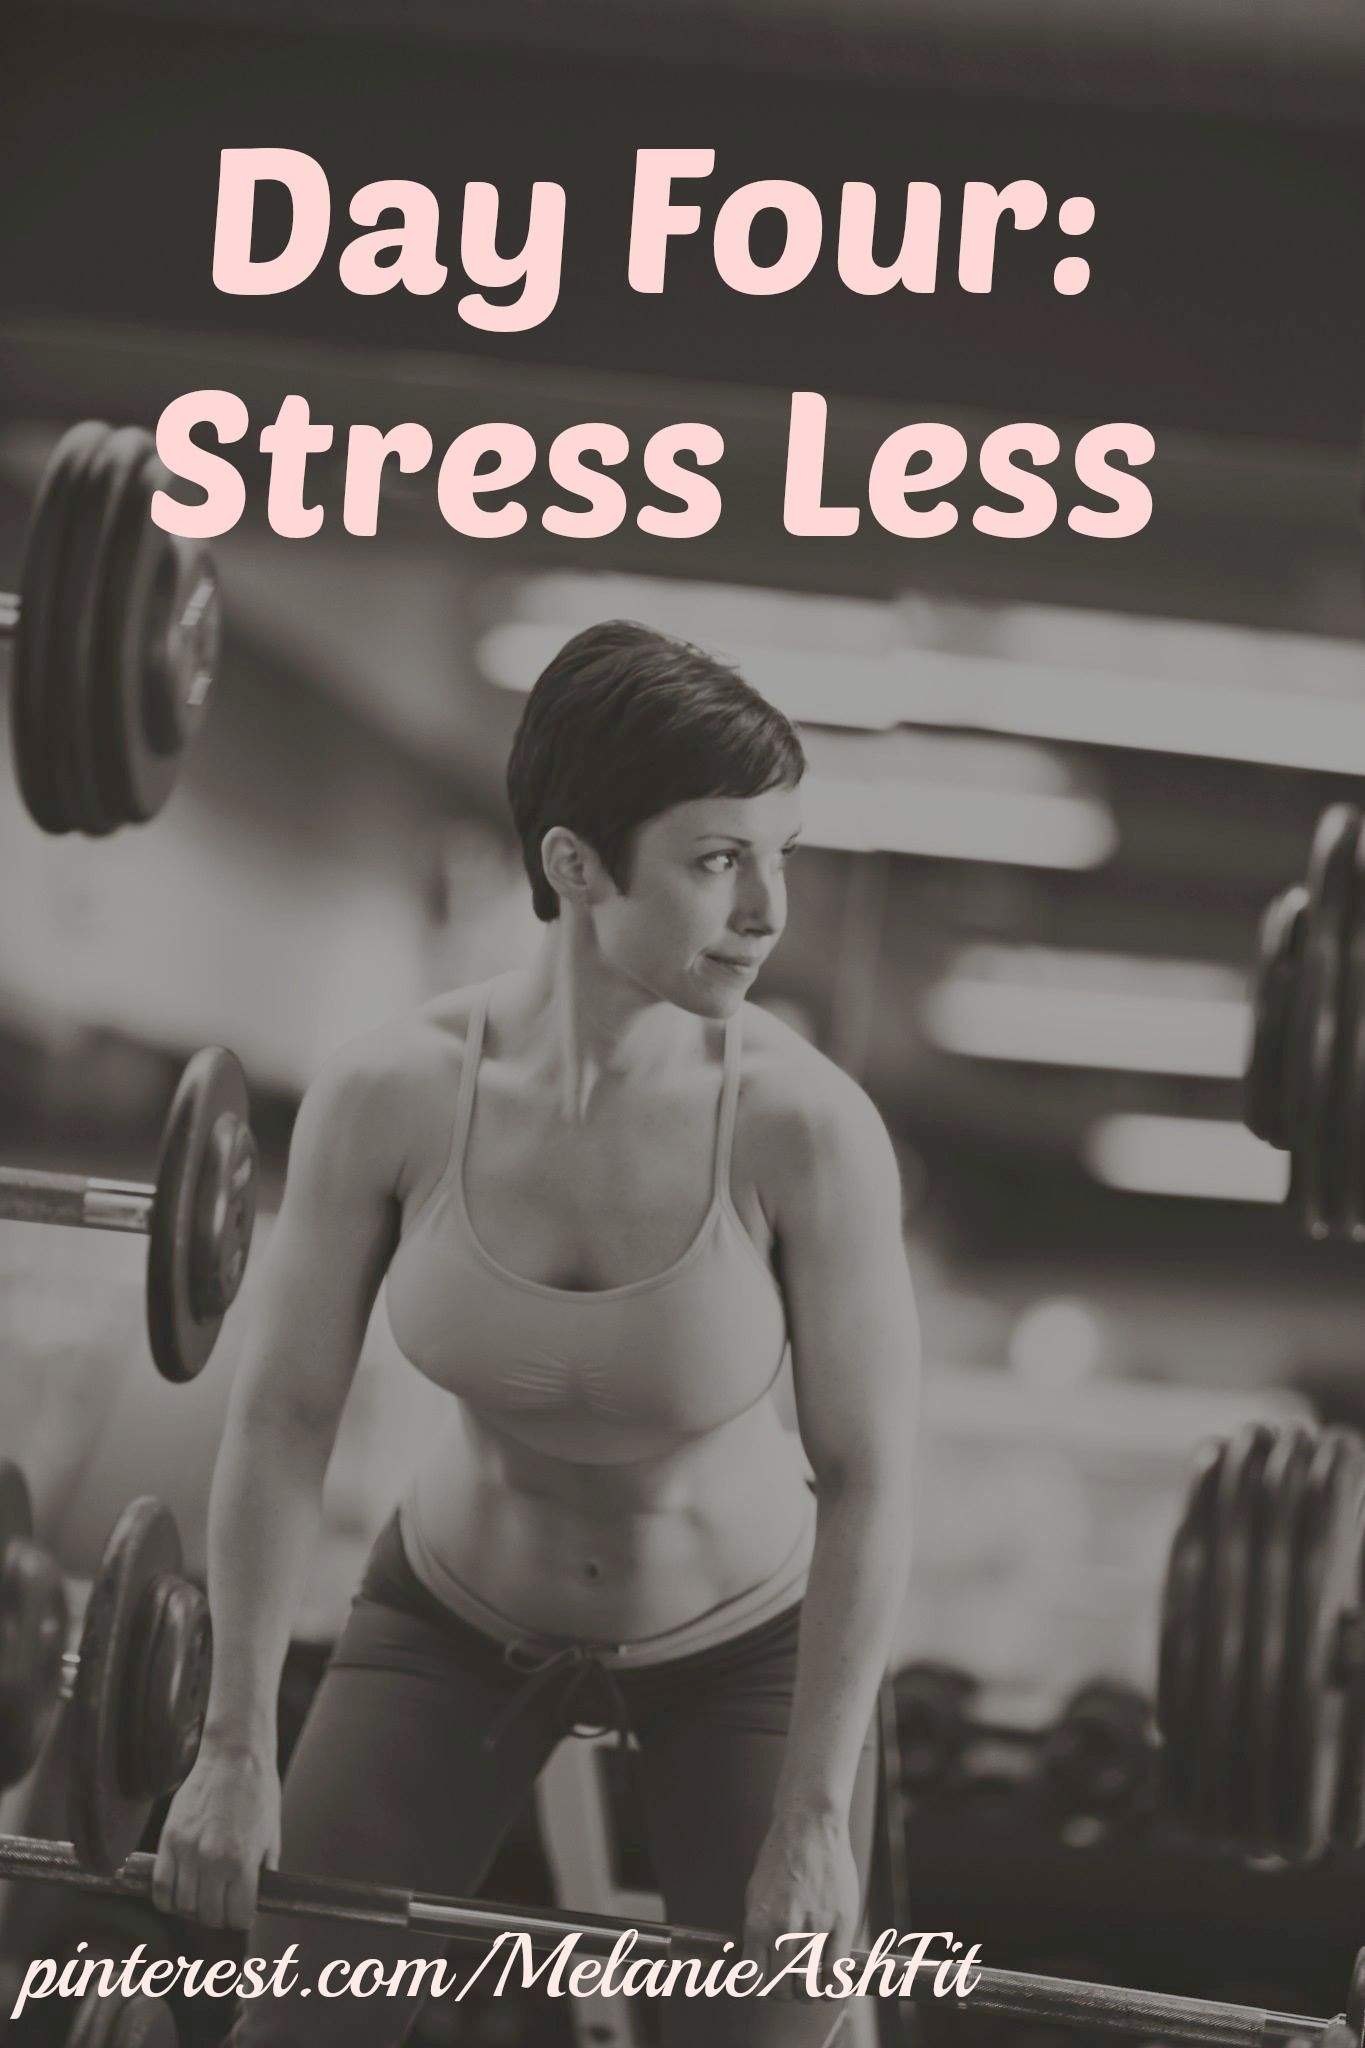 It S Time To De Stress Did You Know Chronic Stress Can Cause You To Gain Weight Or Keep You Fr Personal Training Studio Fitness Trainer Group Fitness Classes